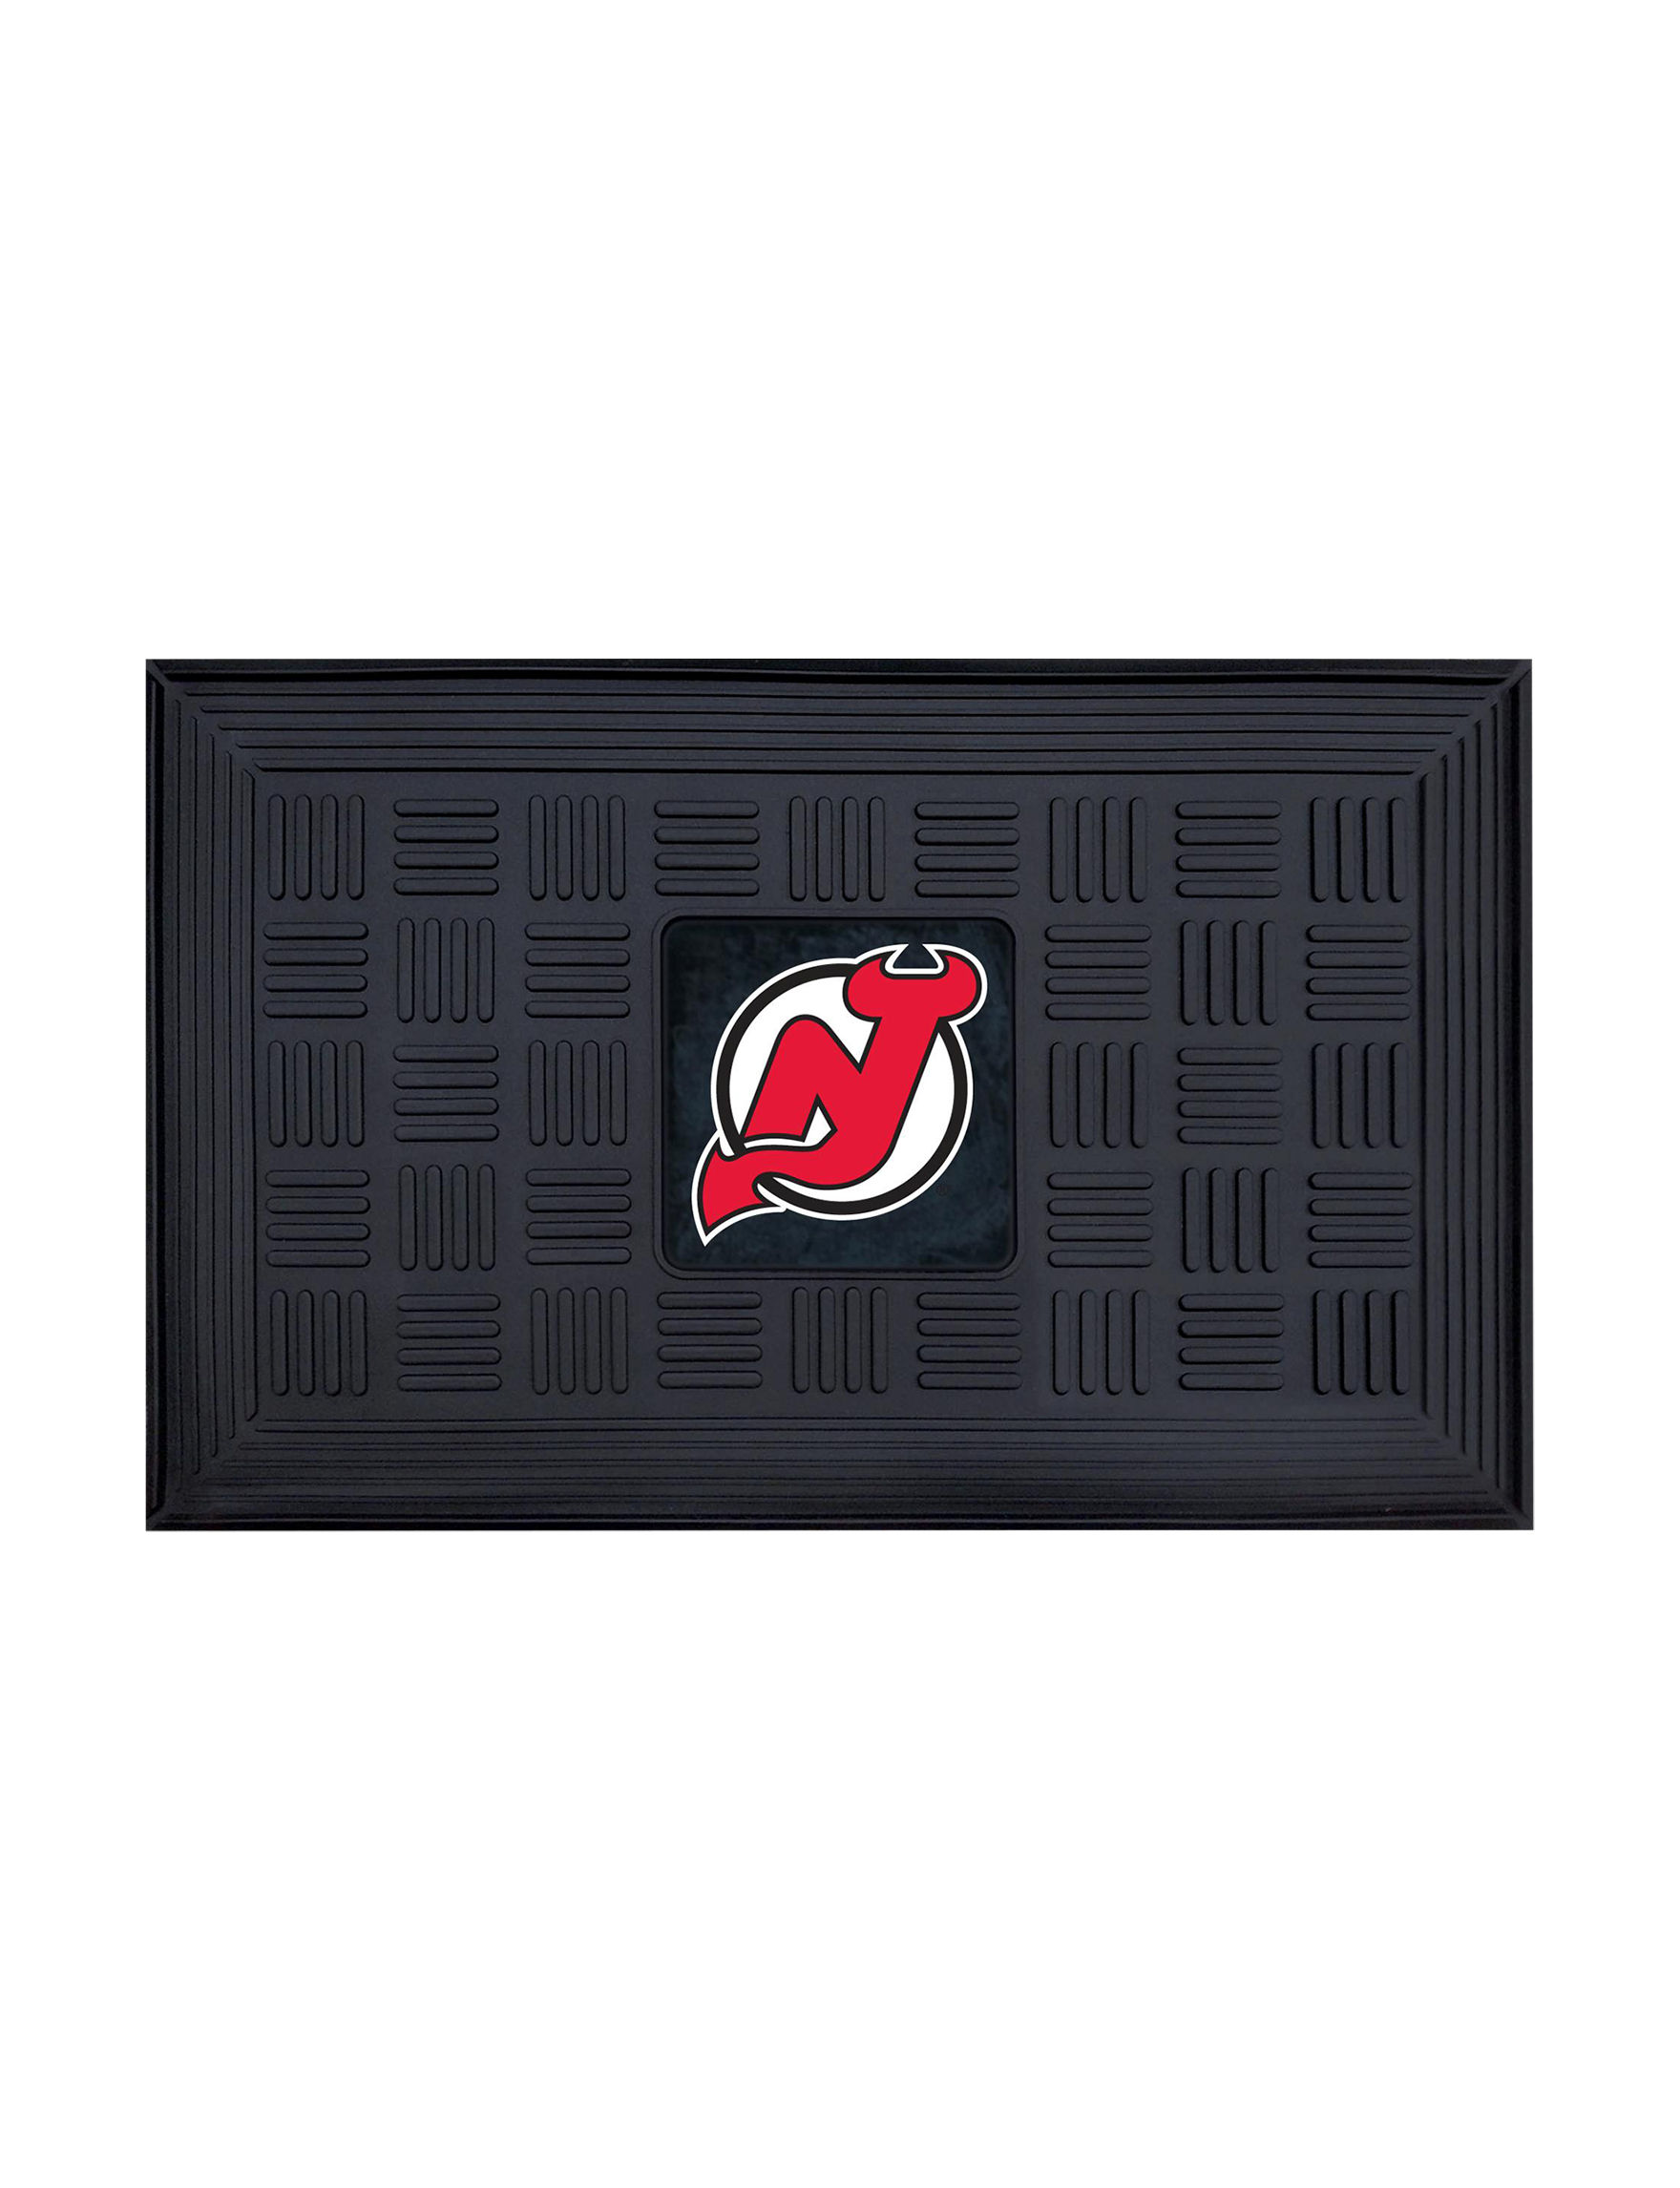 Fanmats Black Outdoor Rugs & Doormats NHL Outdoor Decor